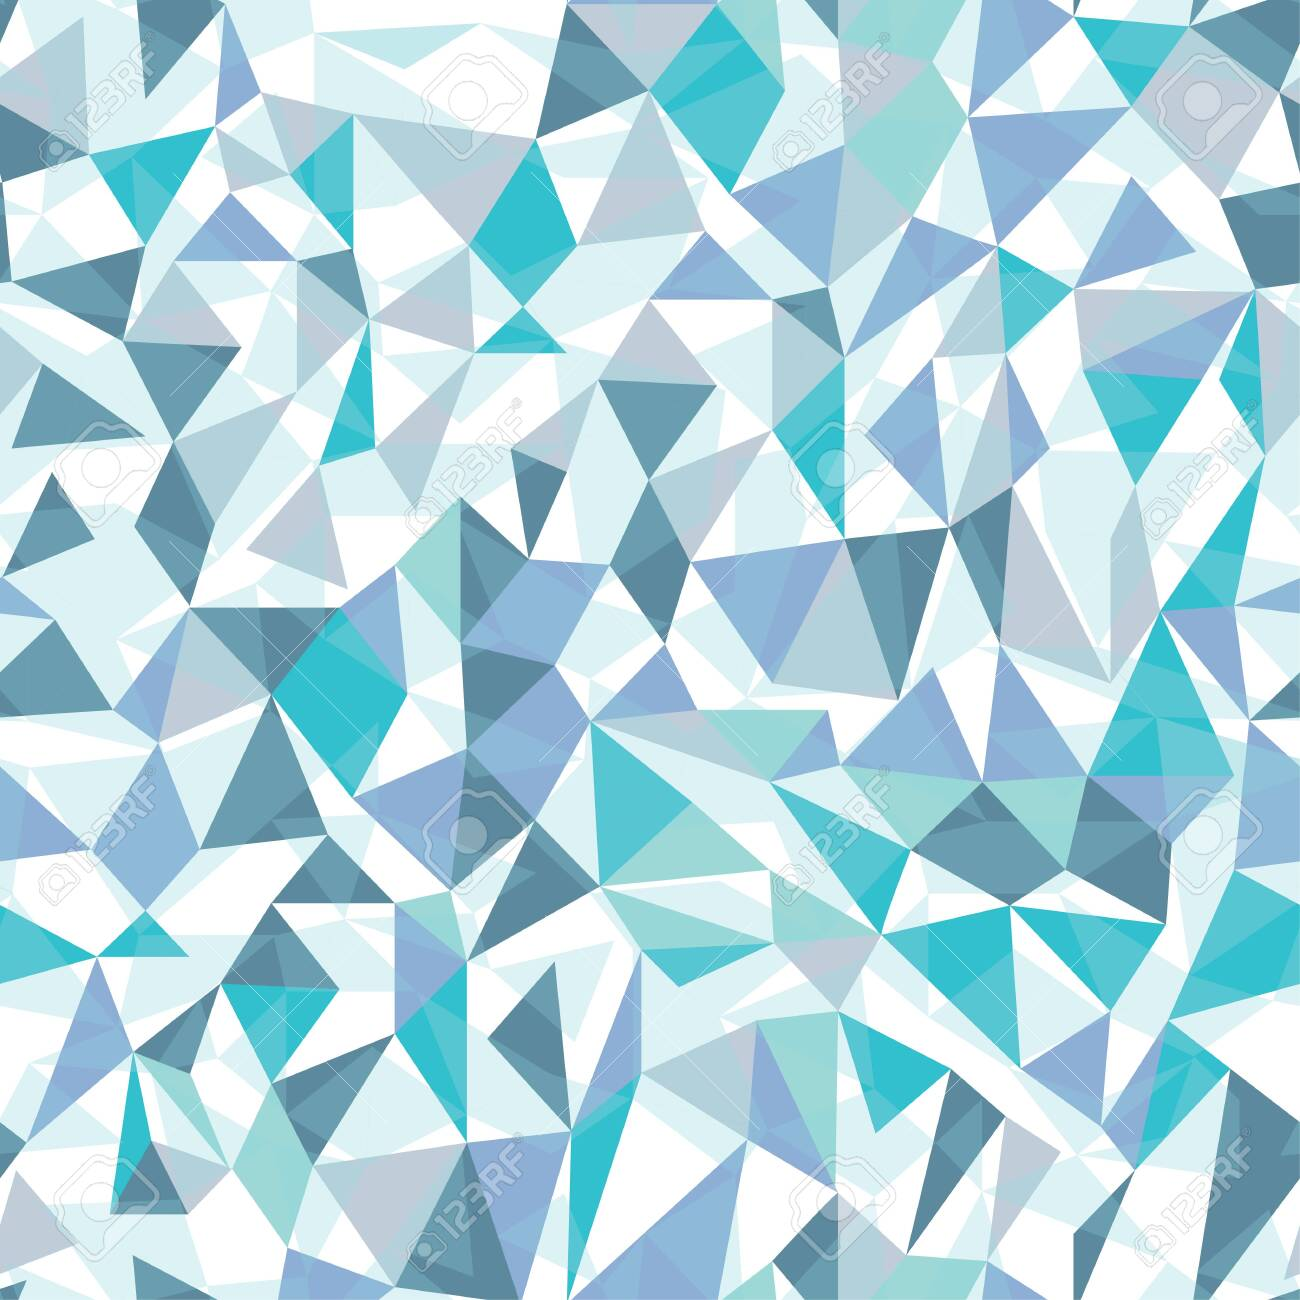 Geometric triangles in icy blue tones. Great for textiles, stationary, wrapping paper, products or backgrounds. - 144802228